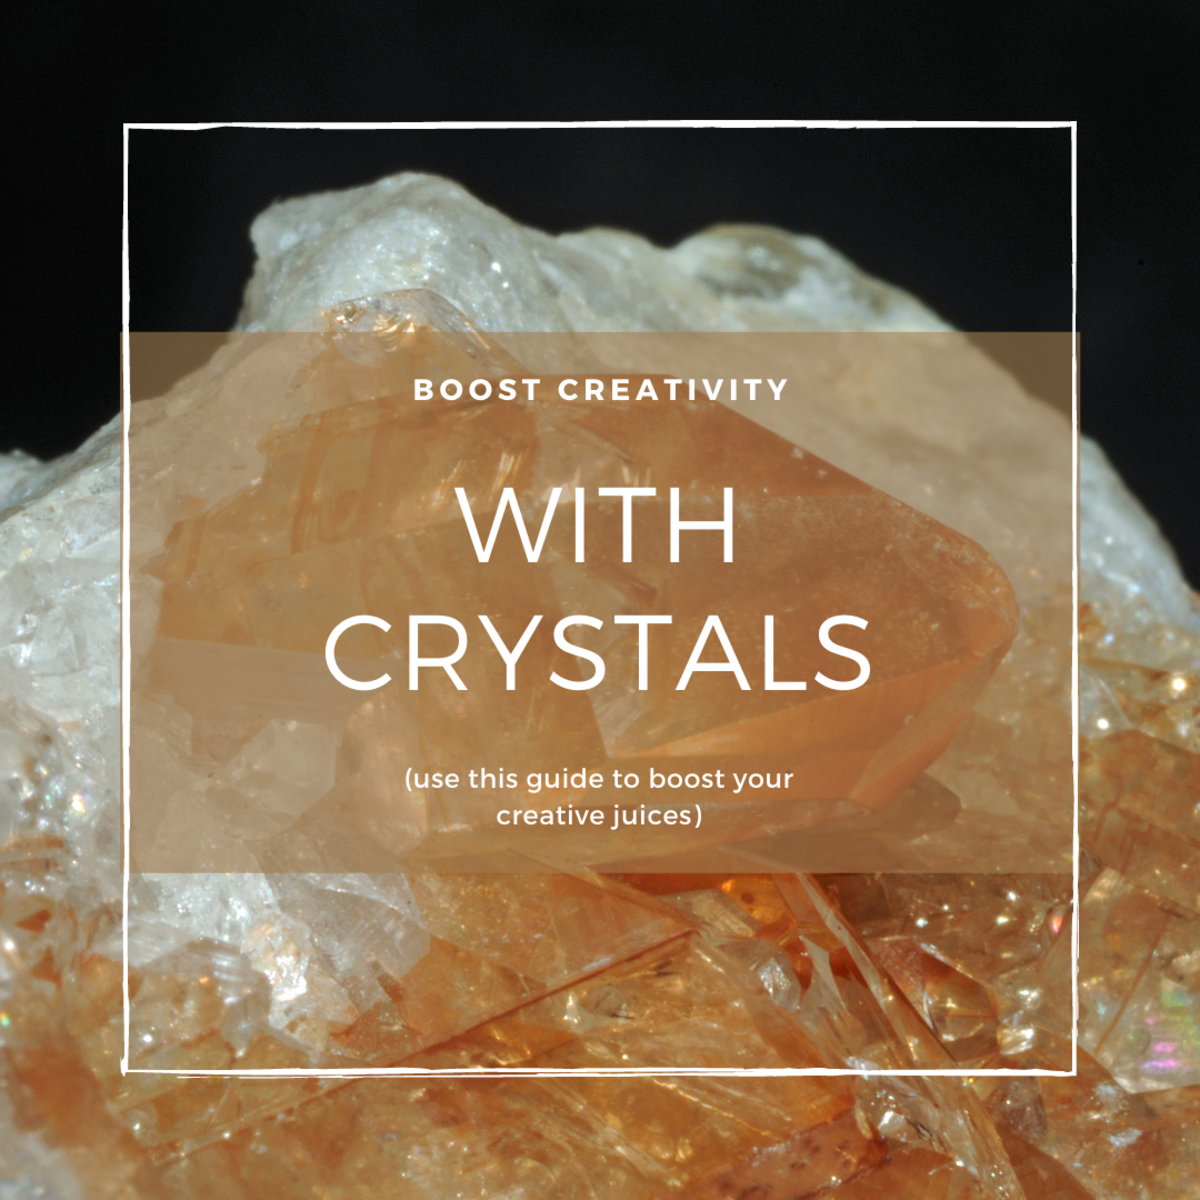 7 Crystals to Boost Creativity